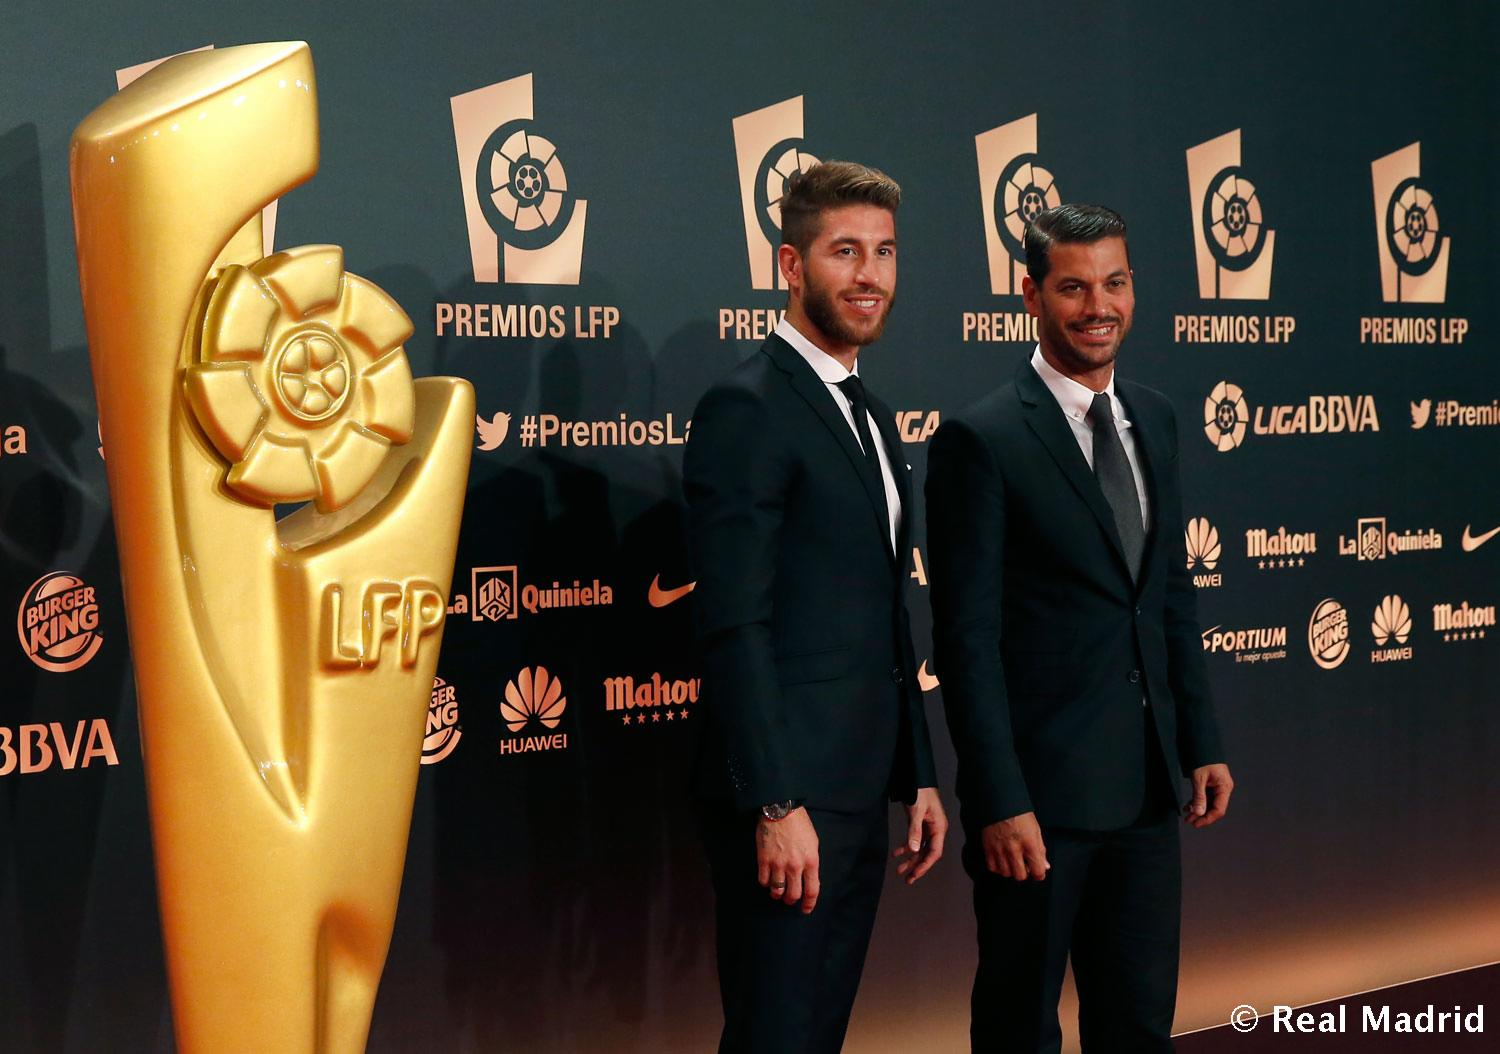 Real Madrid - Gala LFP 2014 - 28-10-2014